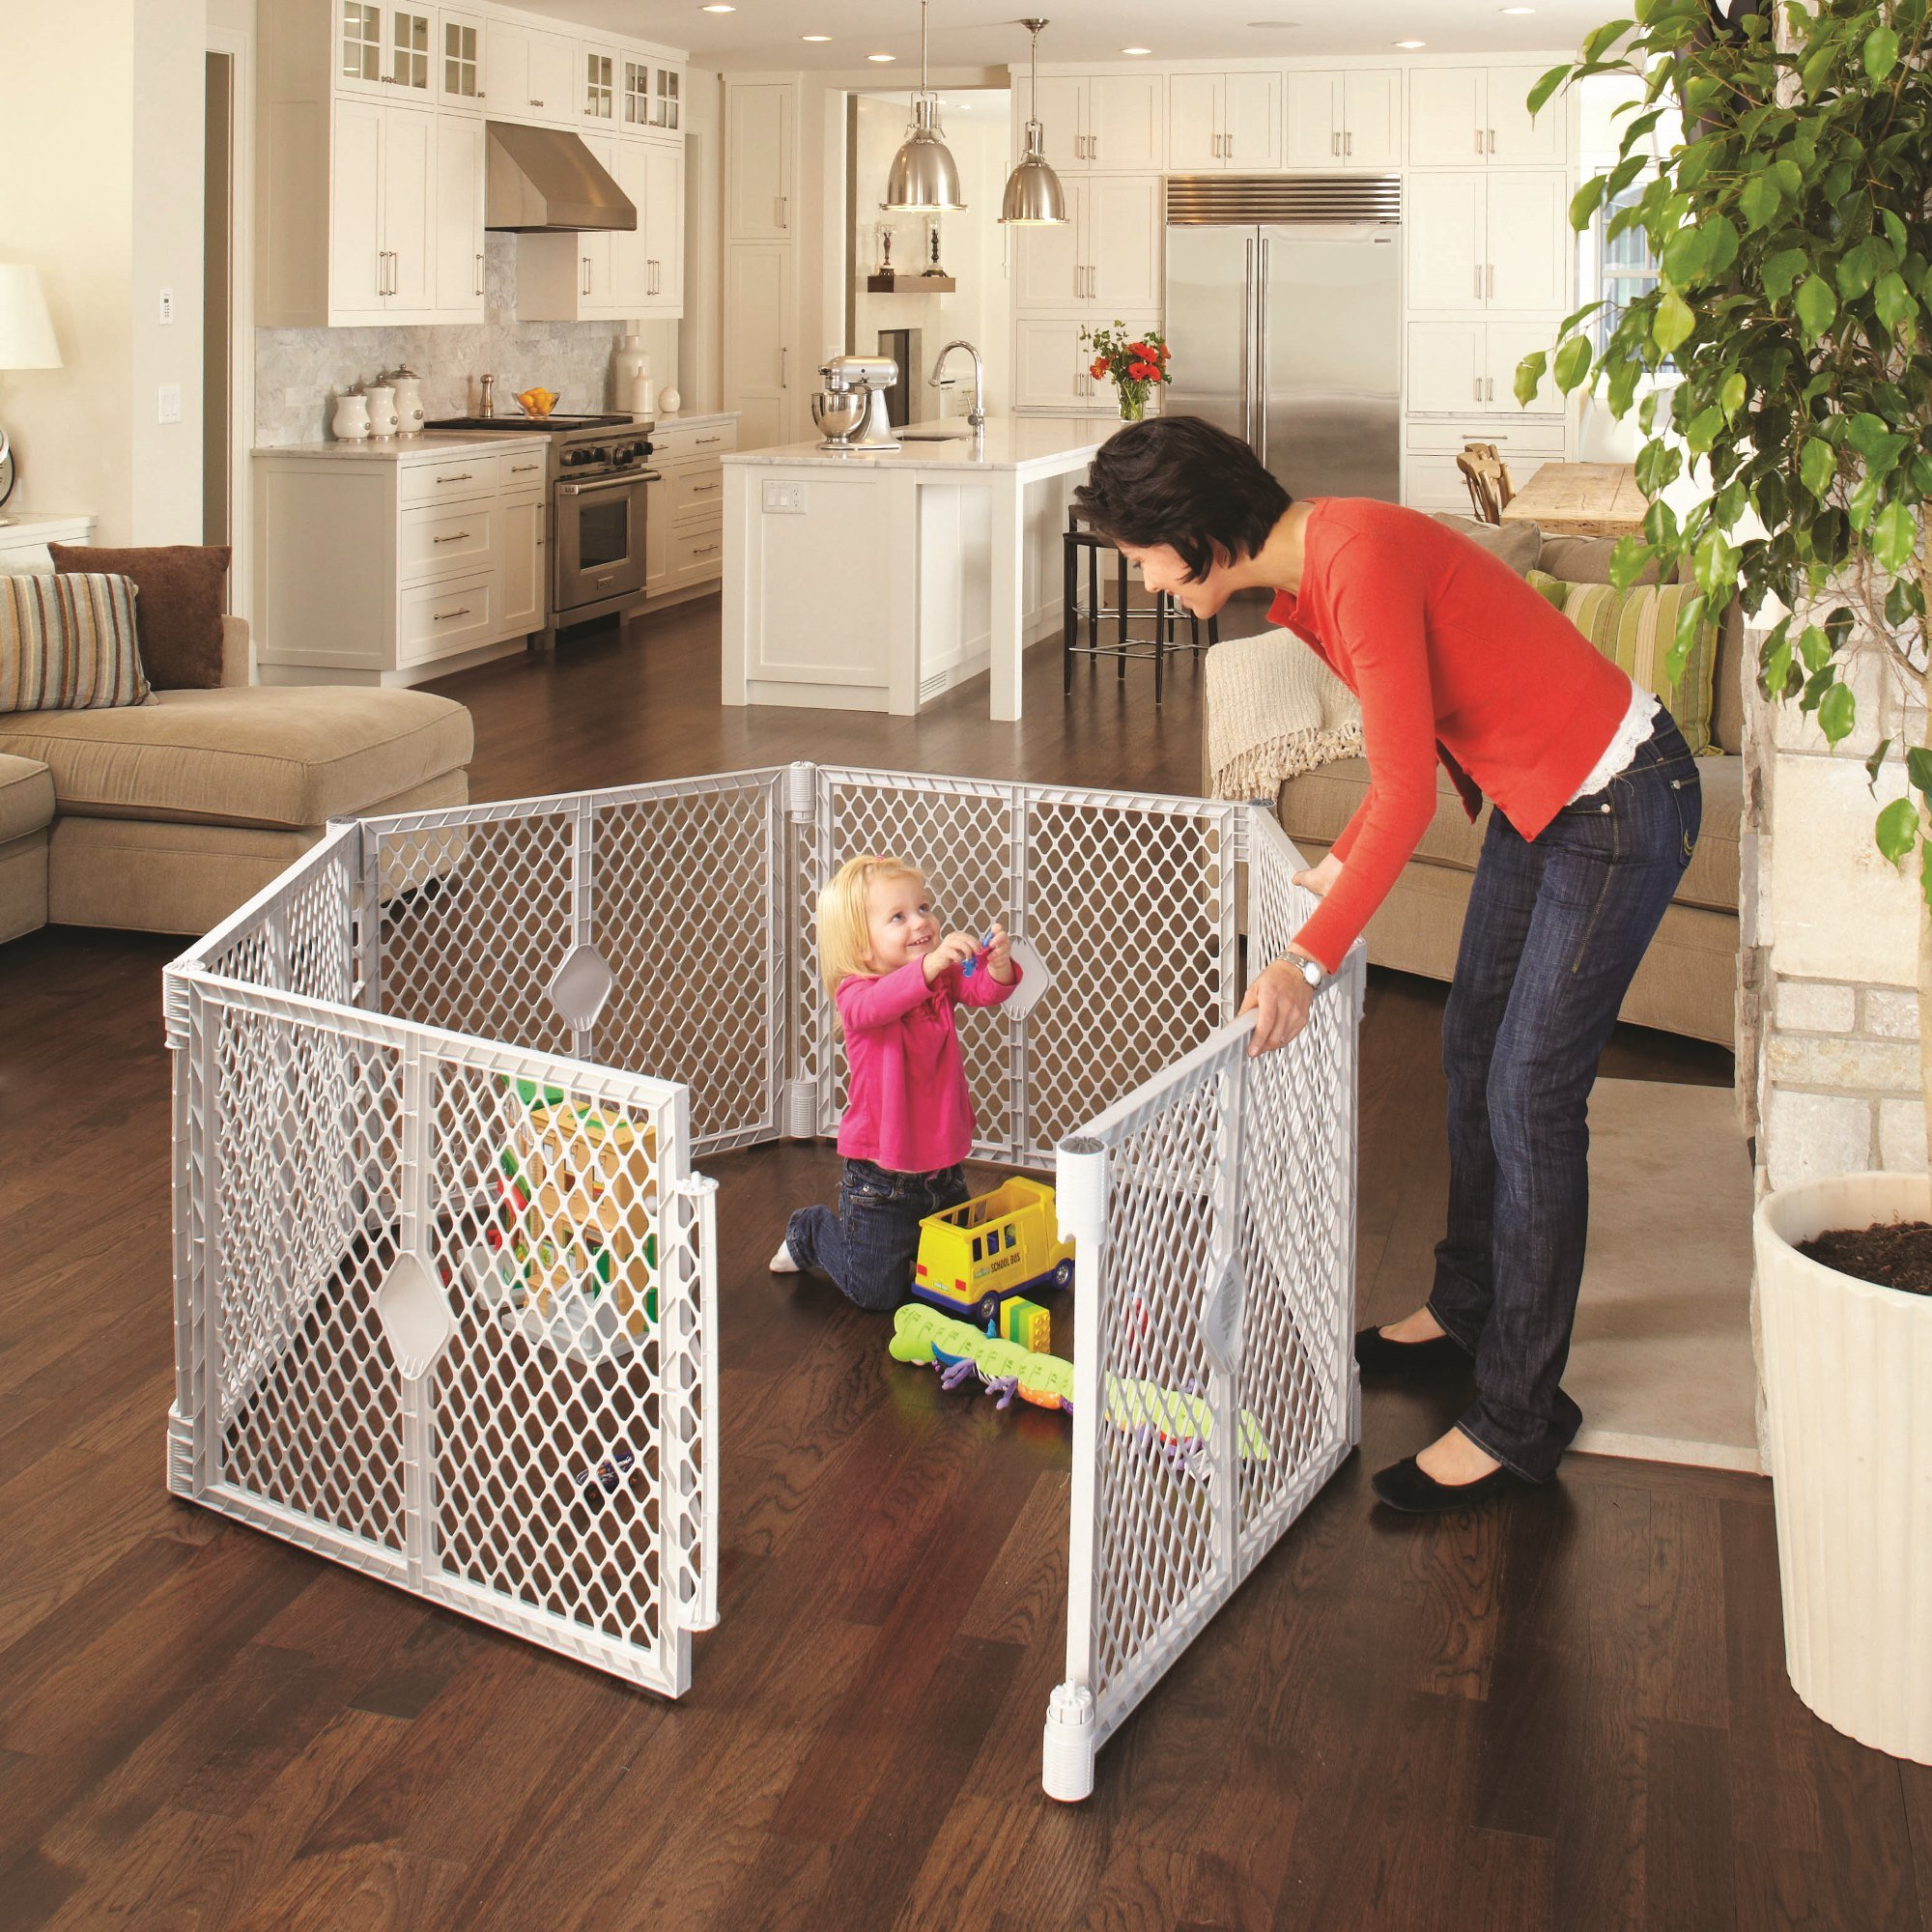 North States SUPERYARD XT Baby/Pet Gate & Play Yard by North States (Image #3)